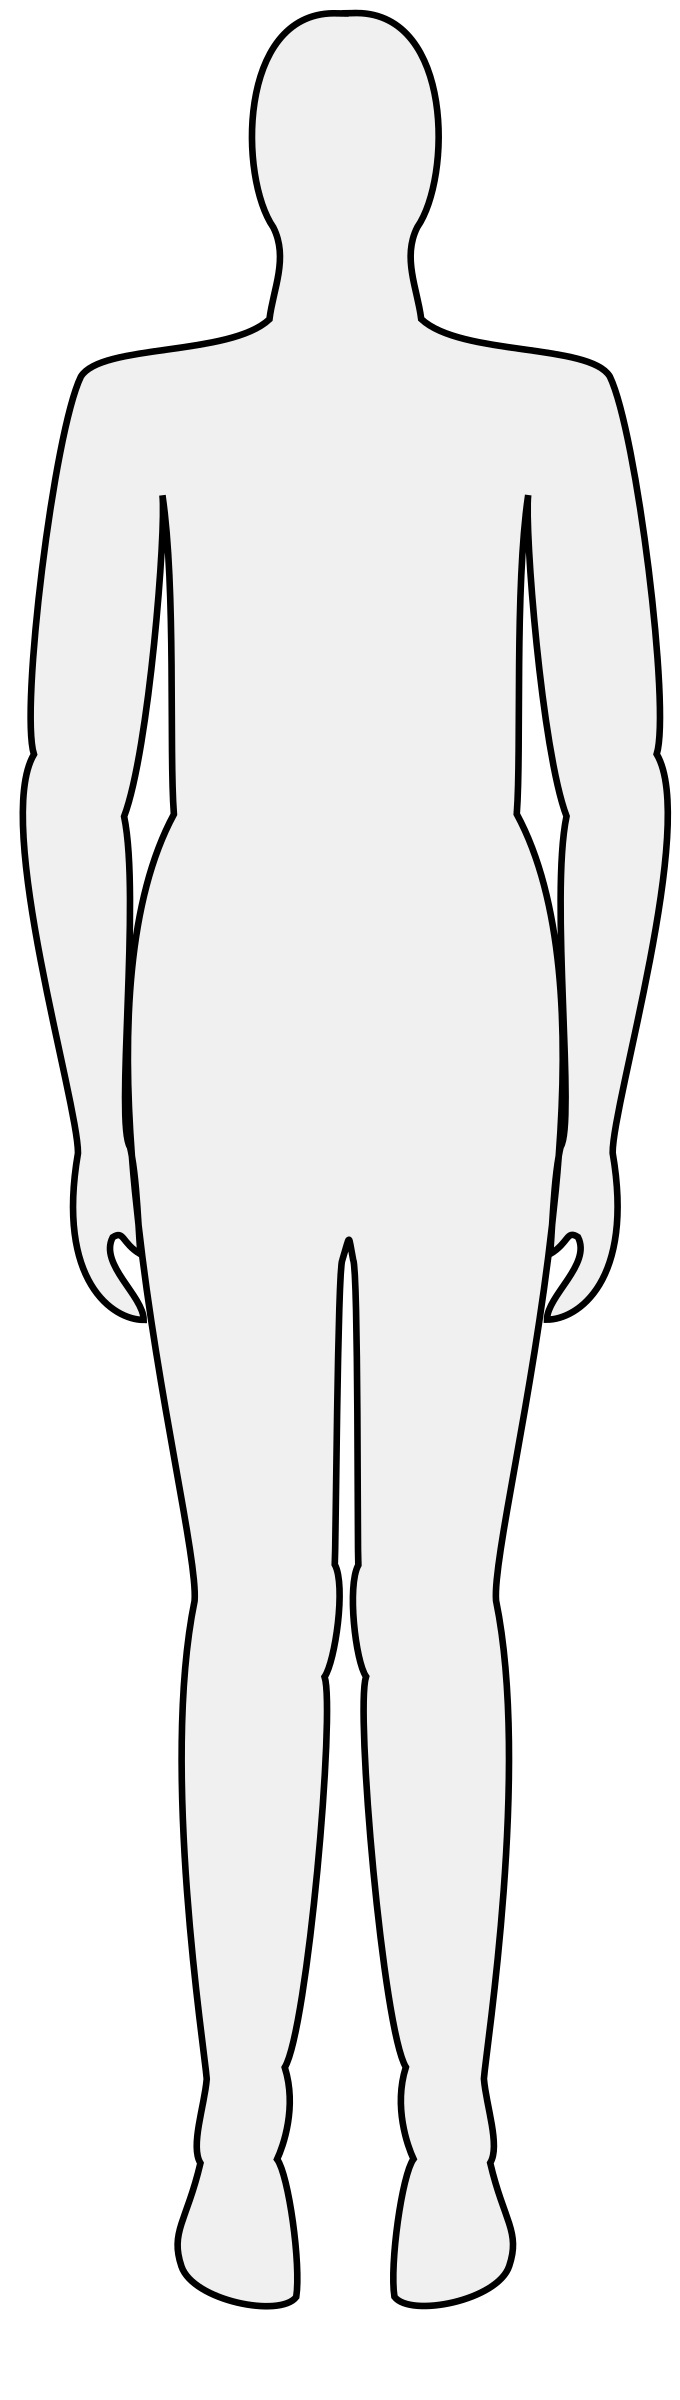 Body clipart body shape. Male silhouette big image